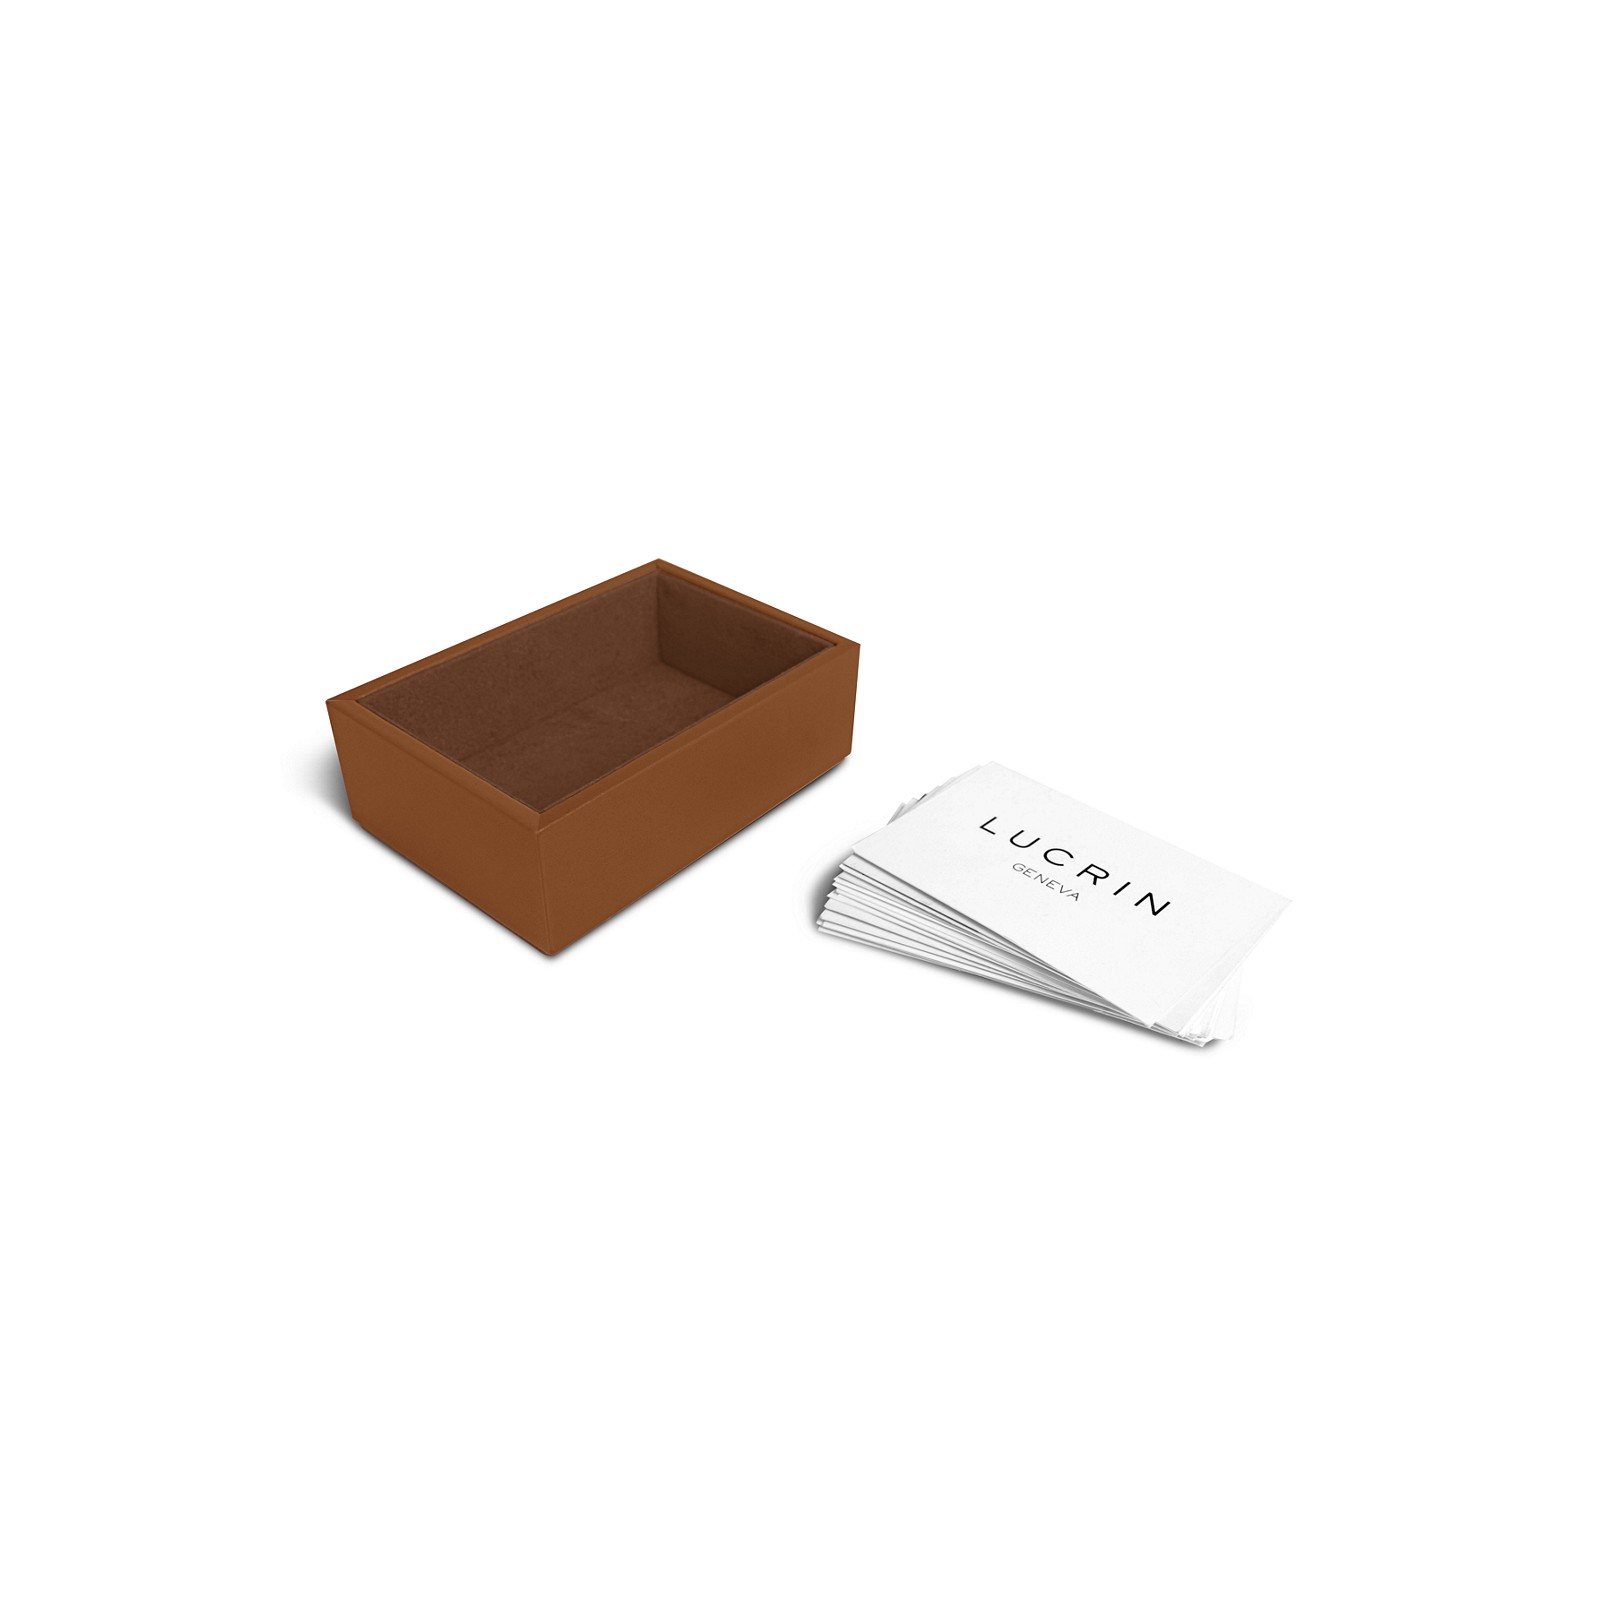 Business cards leather box